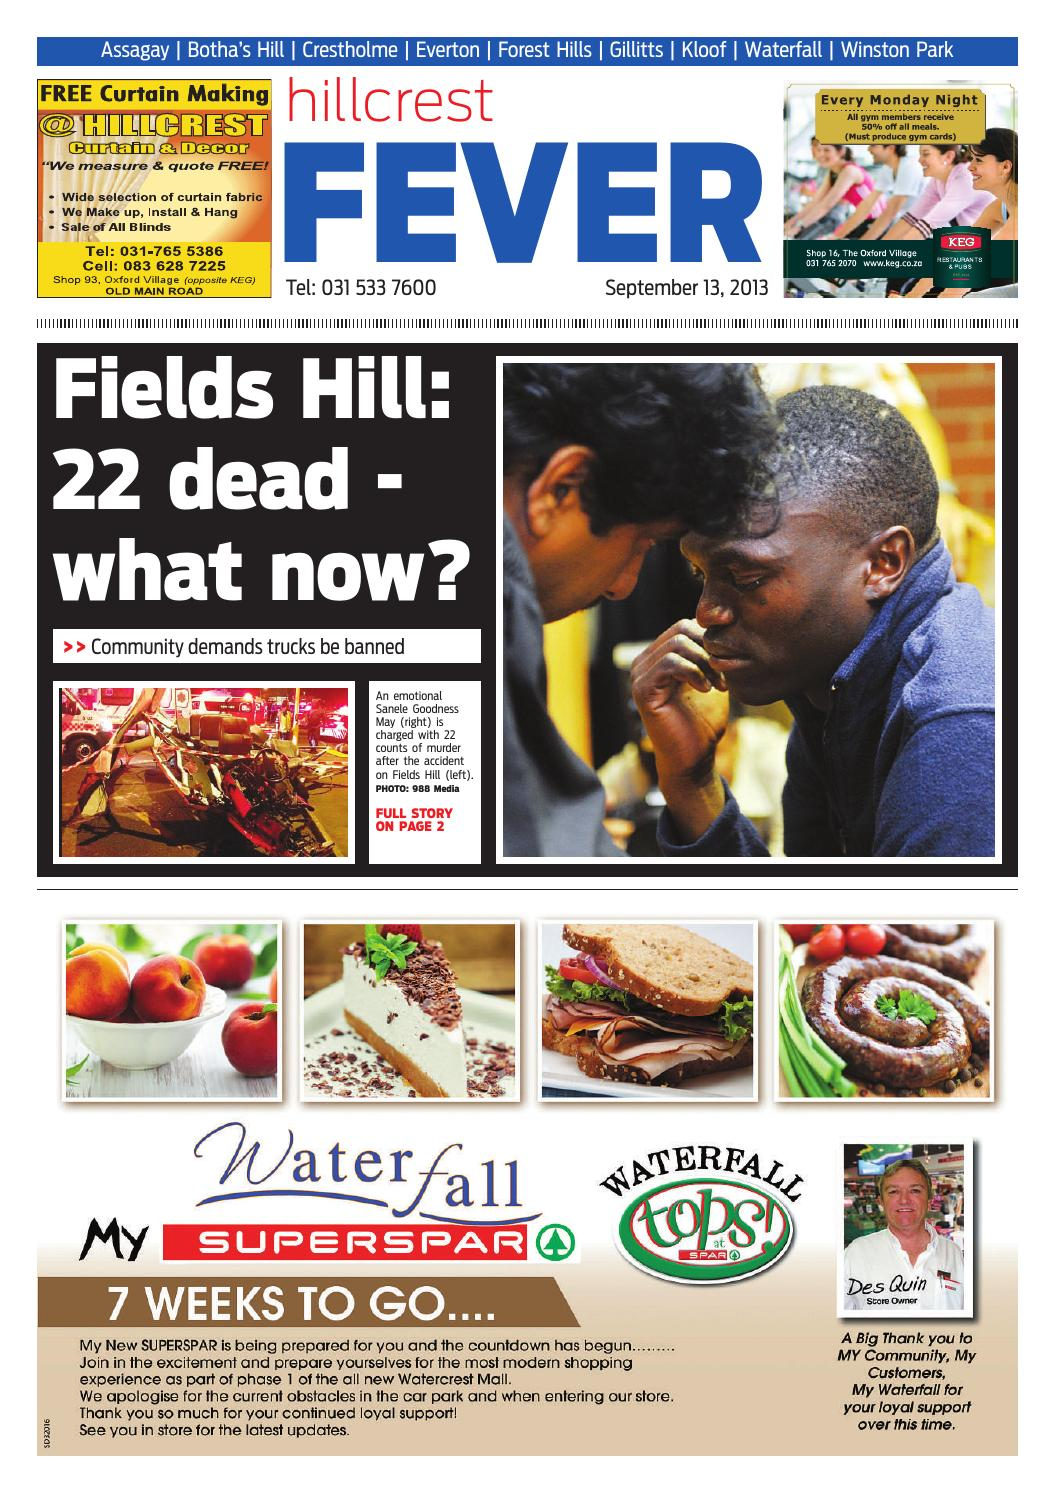 Hillcrest fever 13 09 2013 by Hillcrest Fever - issuu